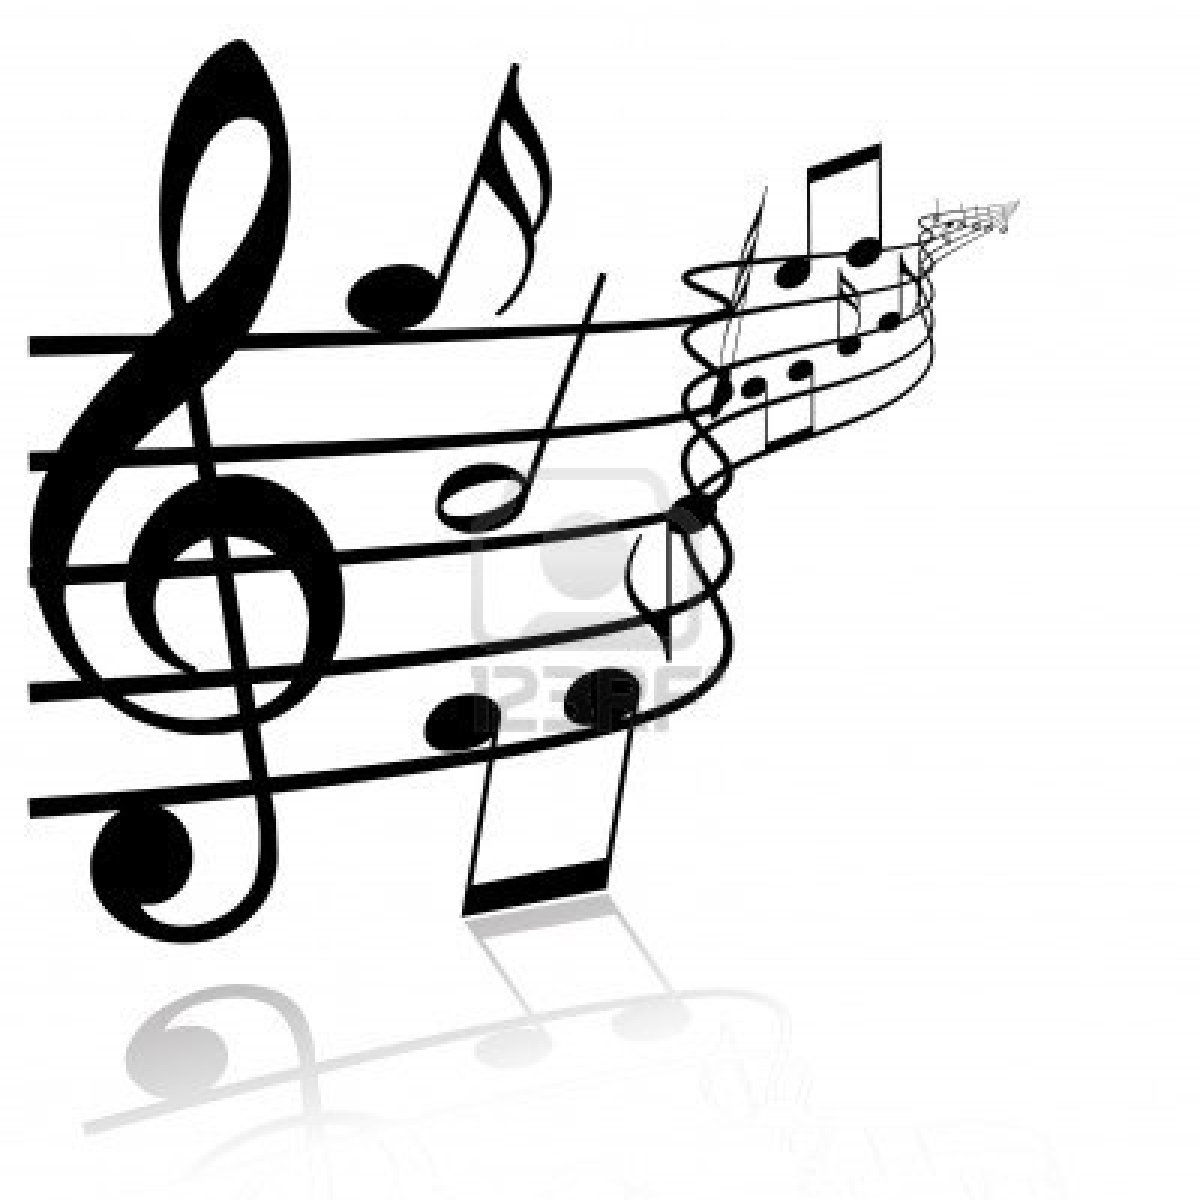 hight resolution of free music notes clipart image 7 2